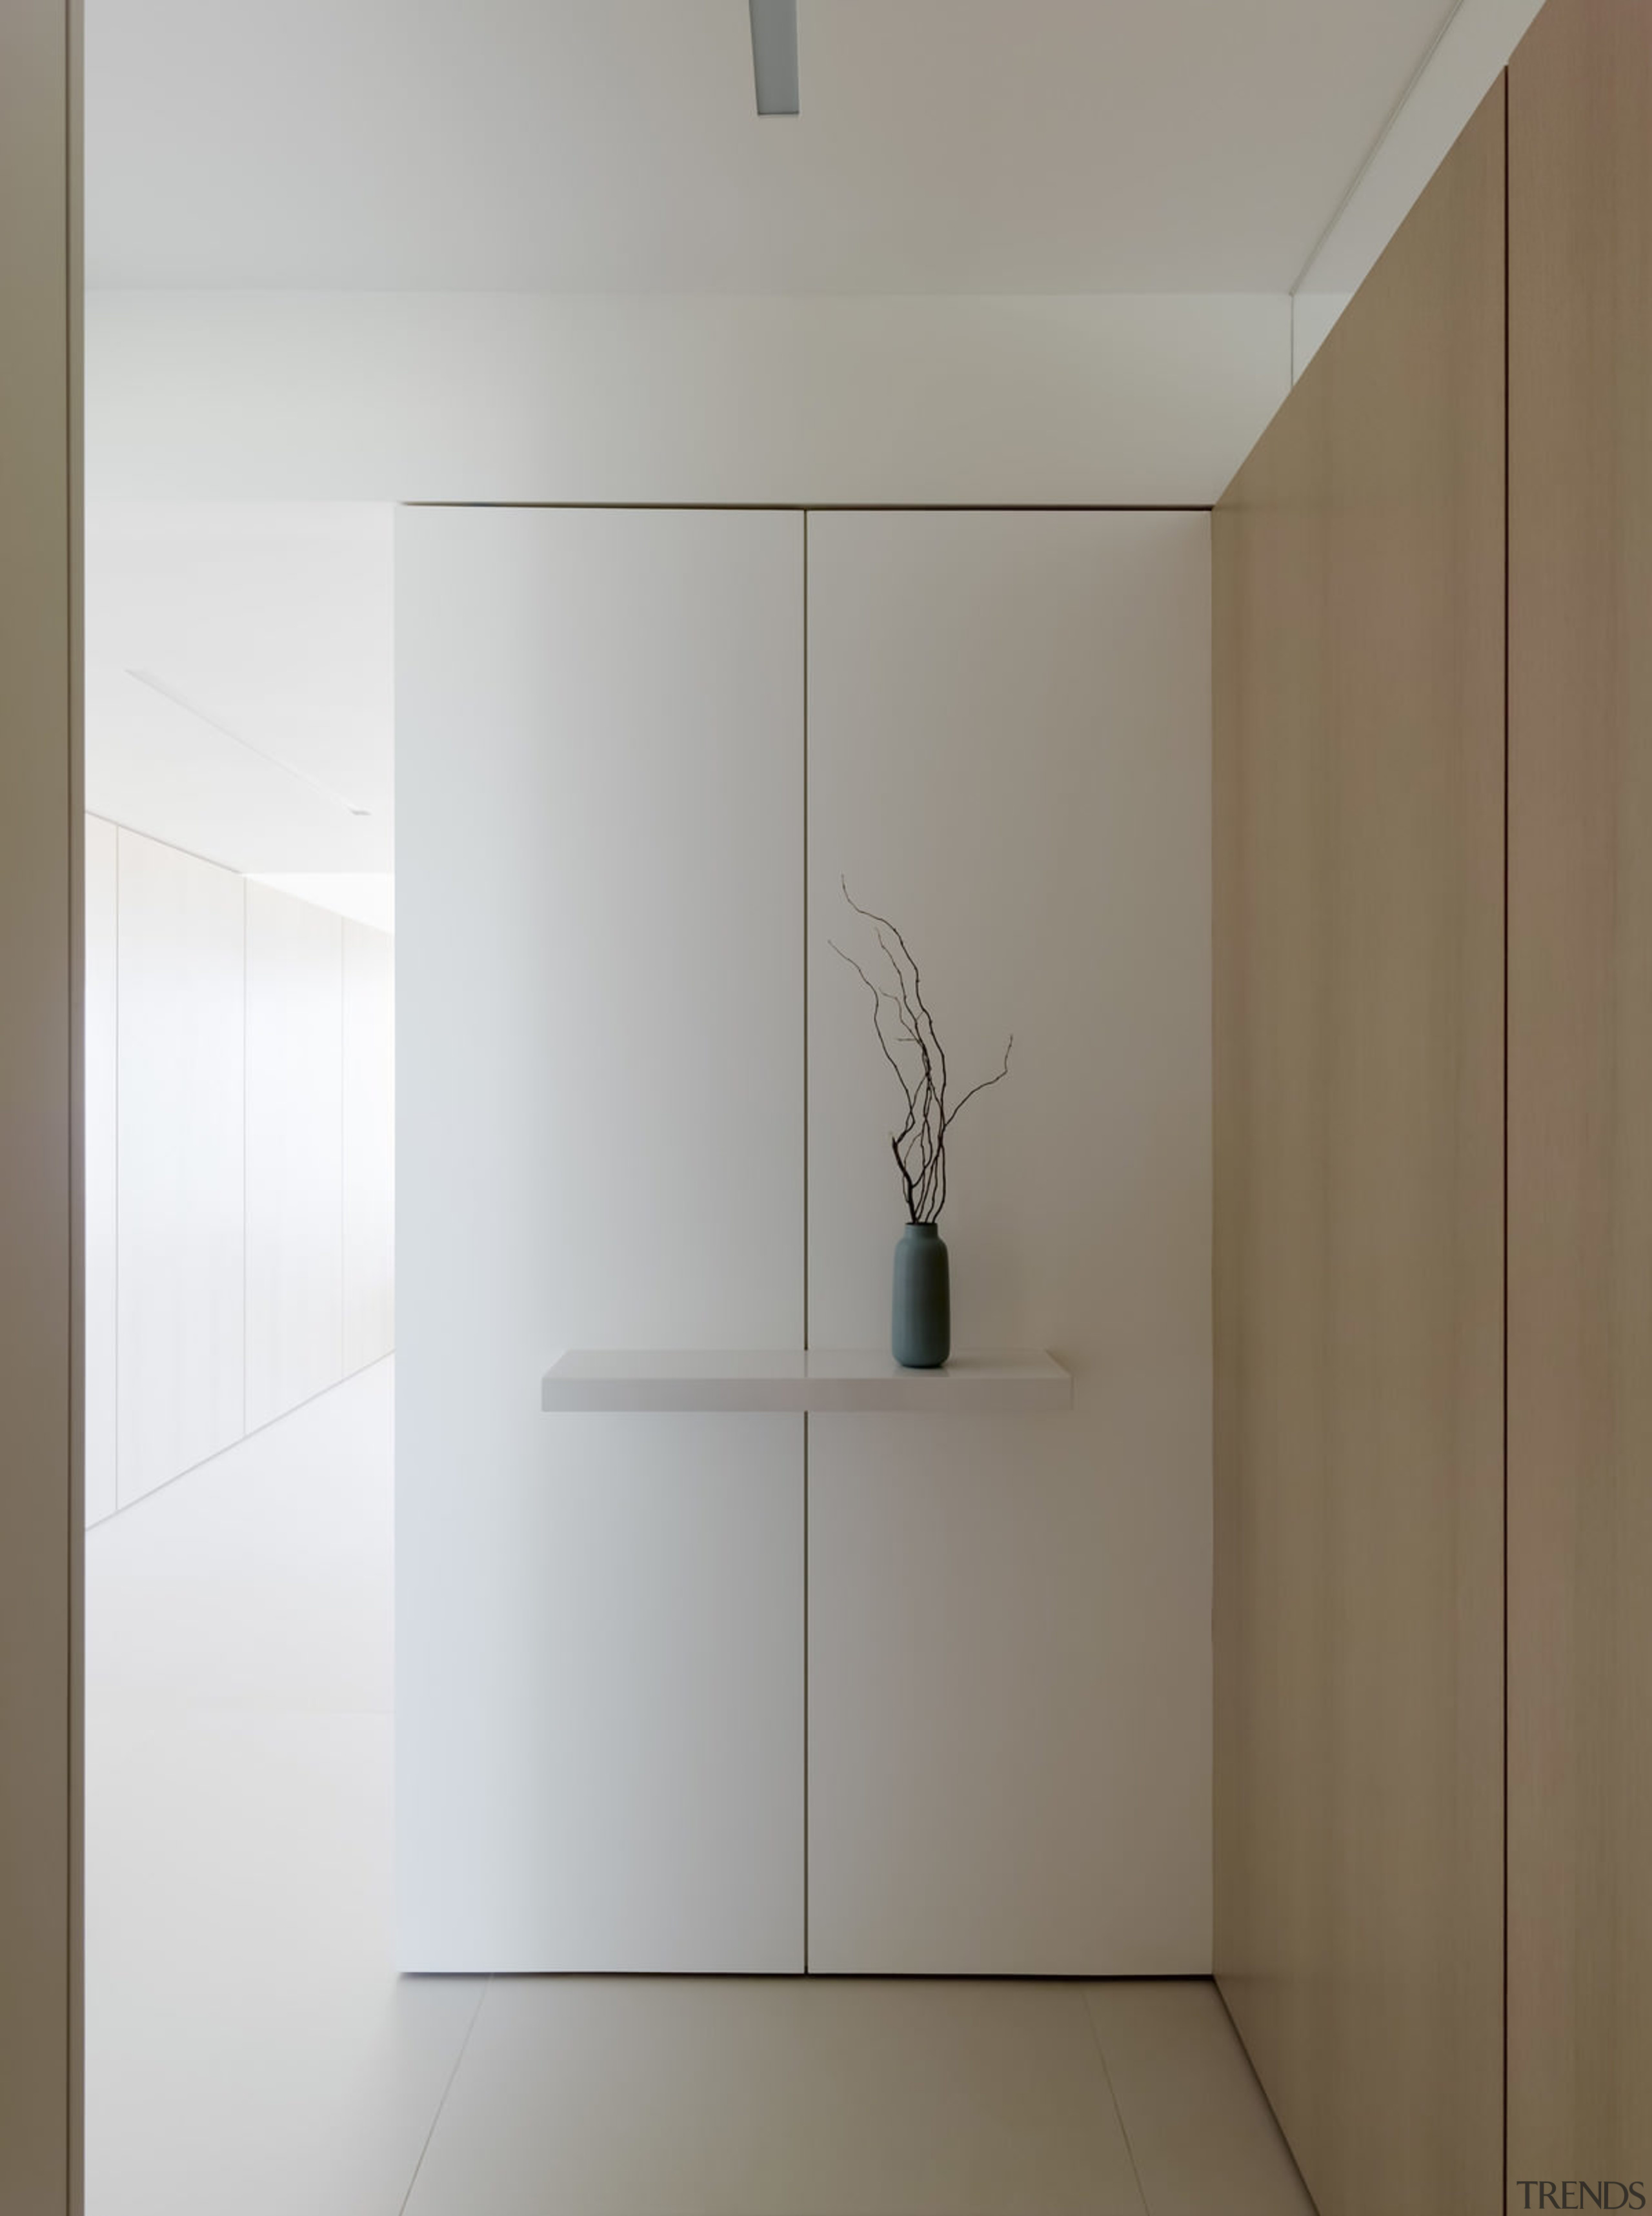 With white walls and simple wood panels, the architecture, interior design, product design, gray, white, brown